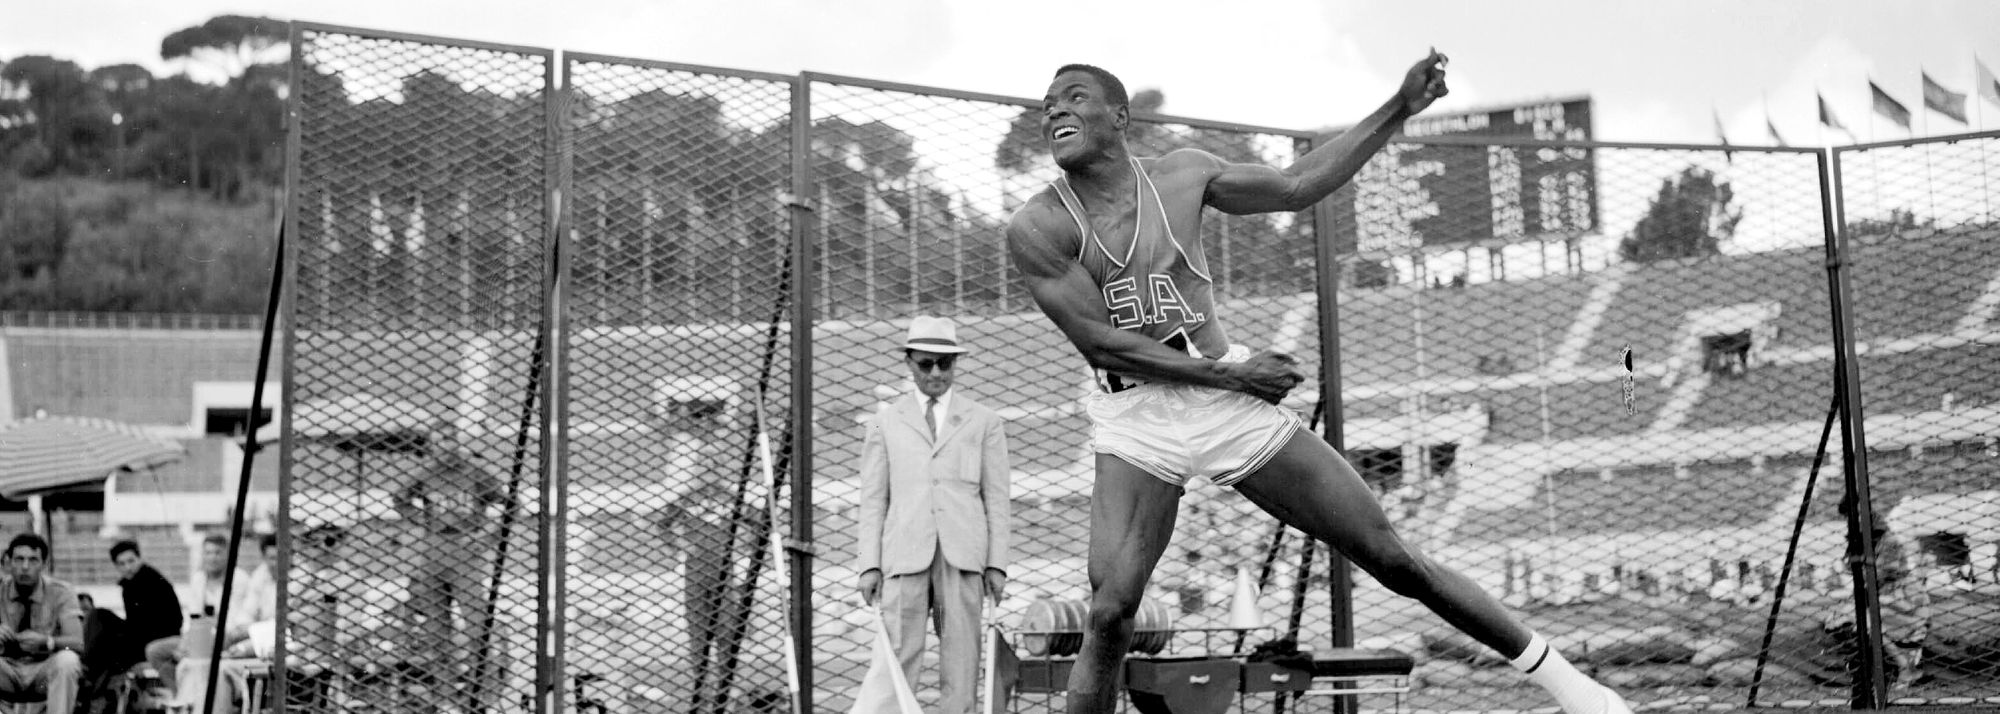 1960 Olympic decathlon champion and former world record-holder Johnson dies